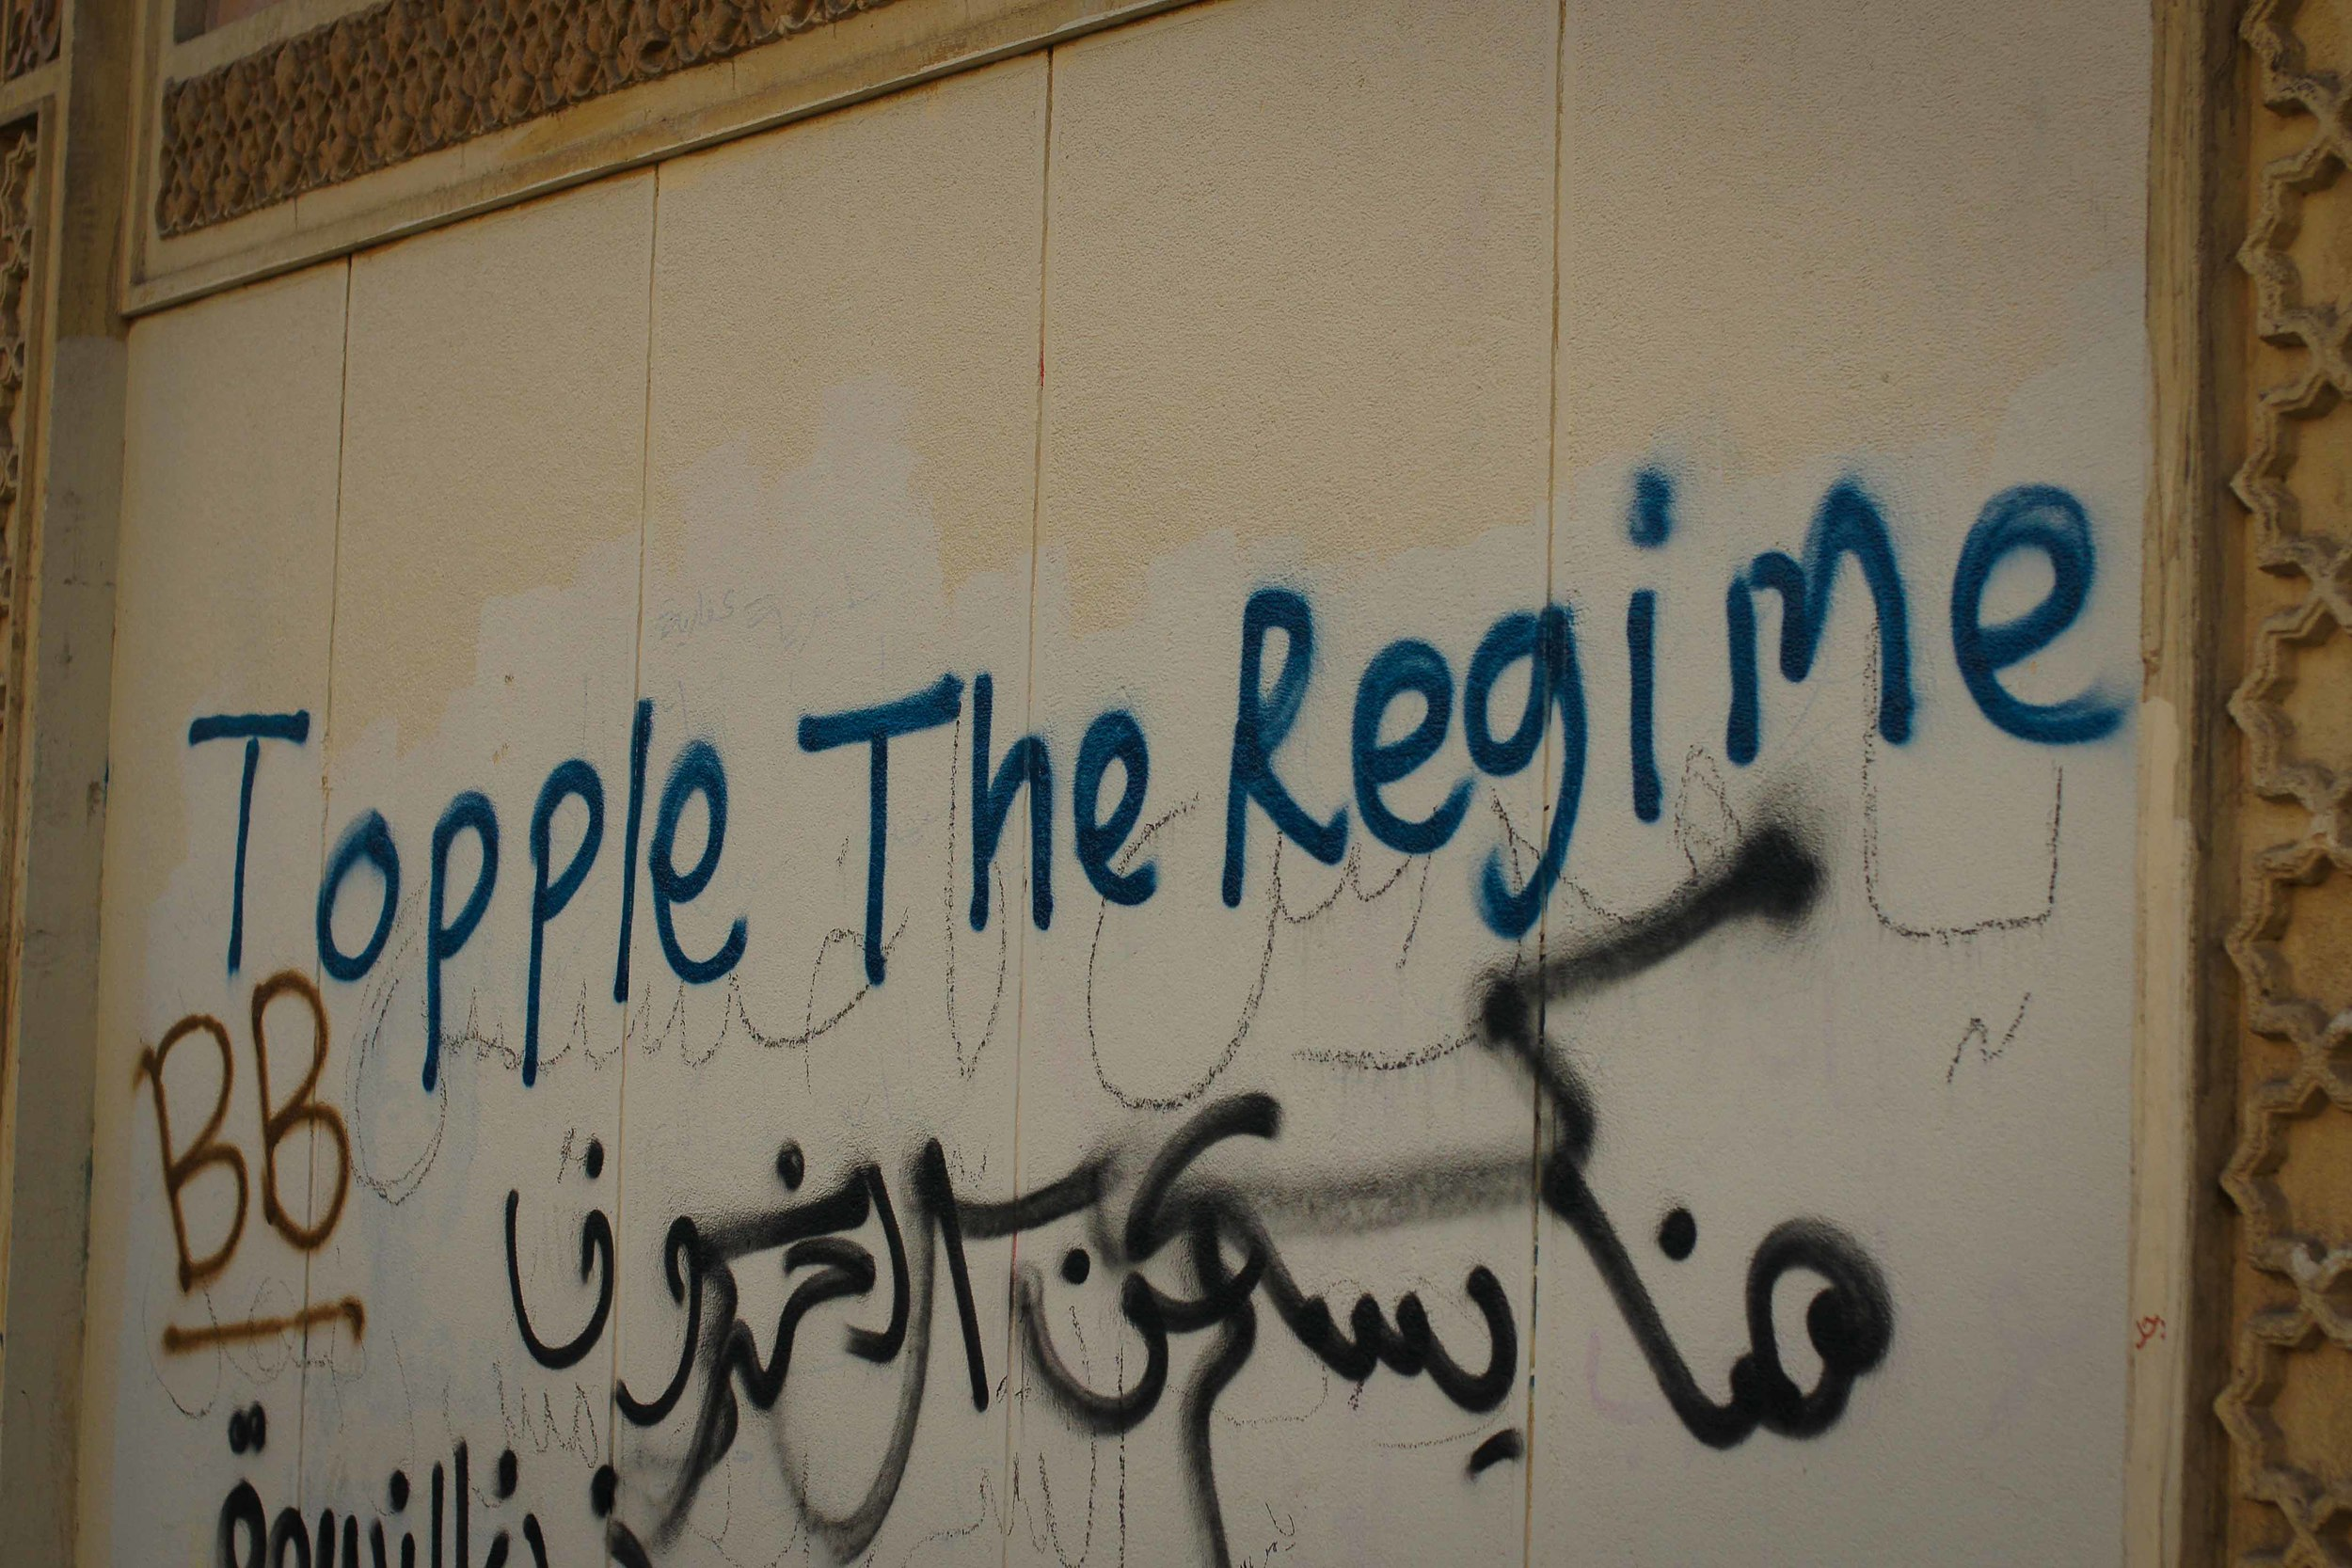 Graffiti has been drawn all over the Presidential Palace walls by protestors.